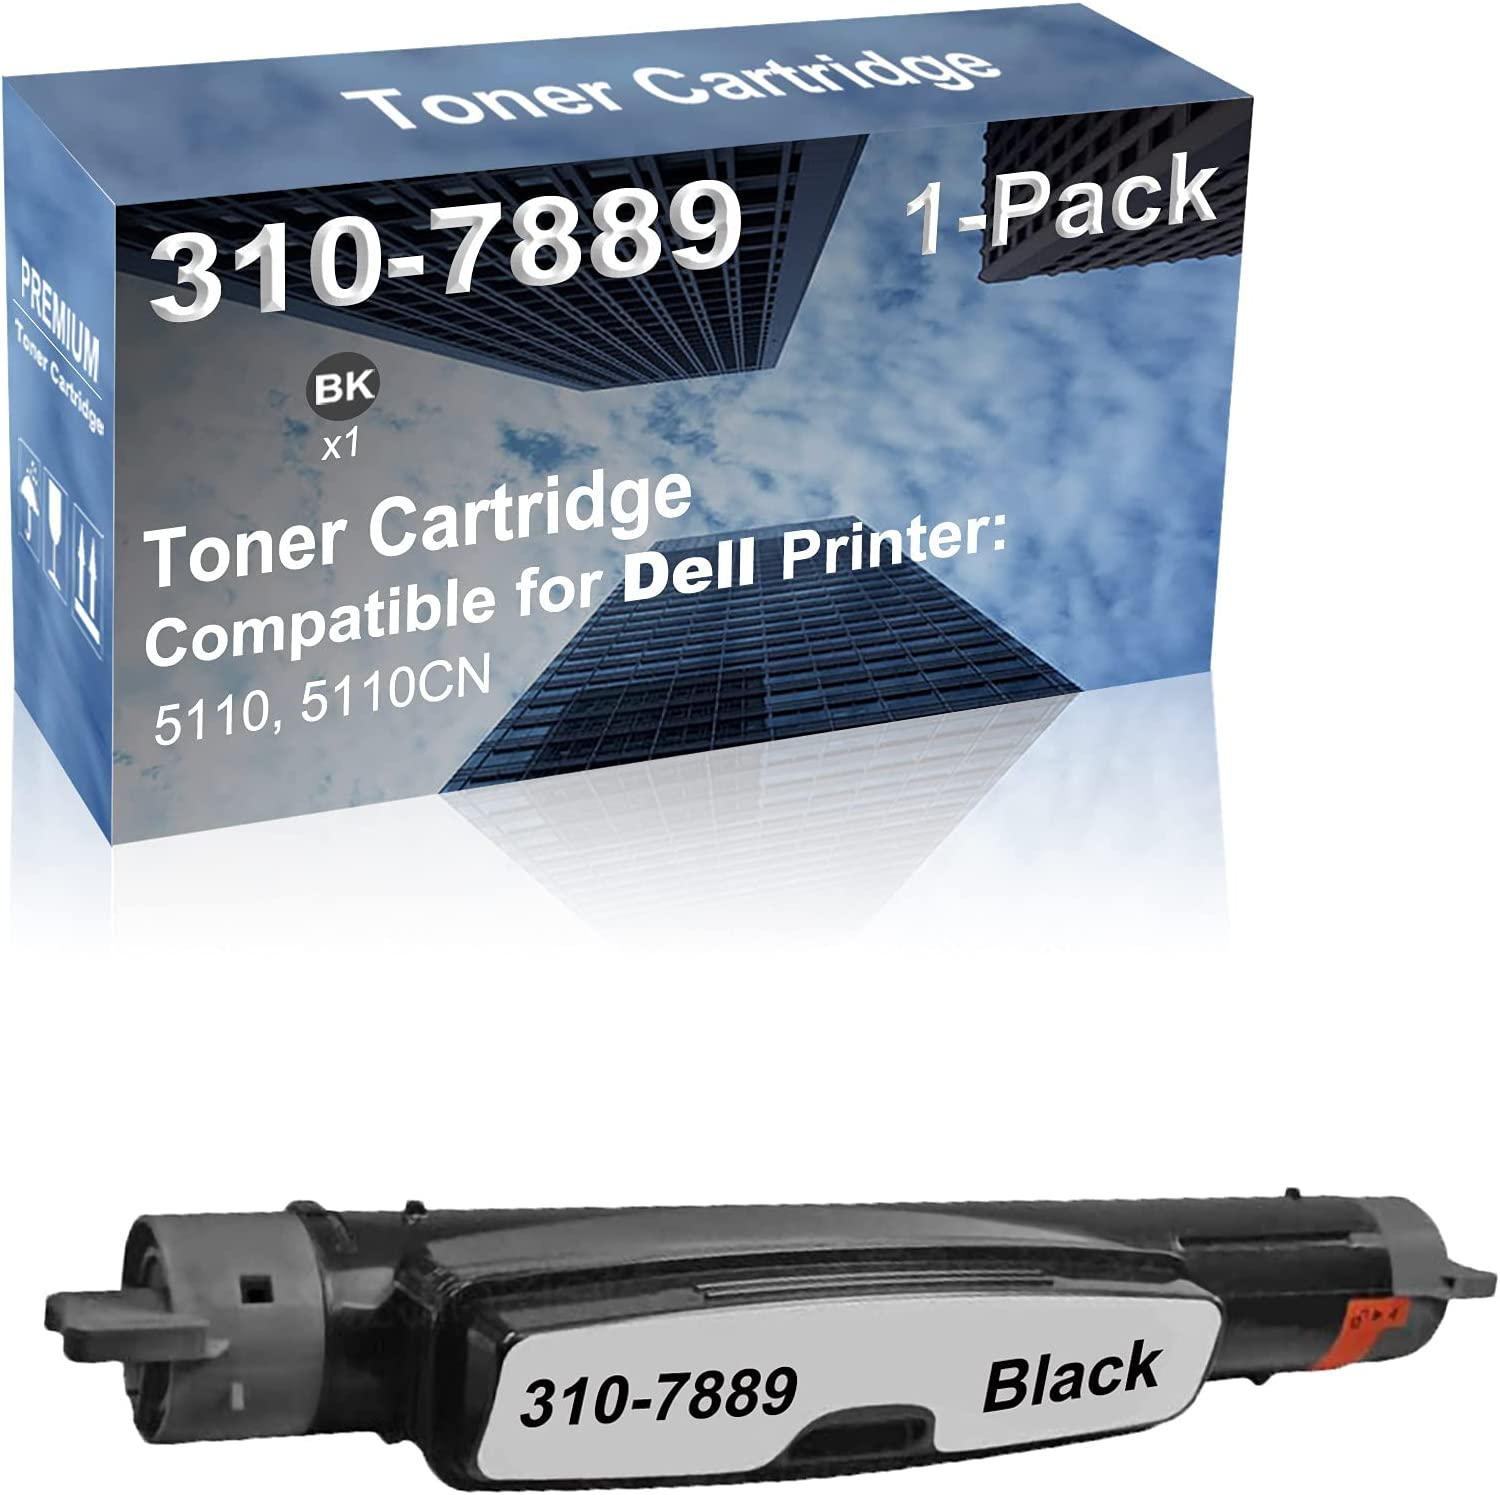 1-Pack (Black) Compatible High Capacity 310-7889 Toner Cartridge Used for Dell 5110, 5110CN Printer